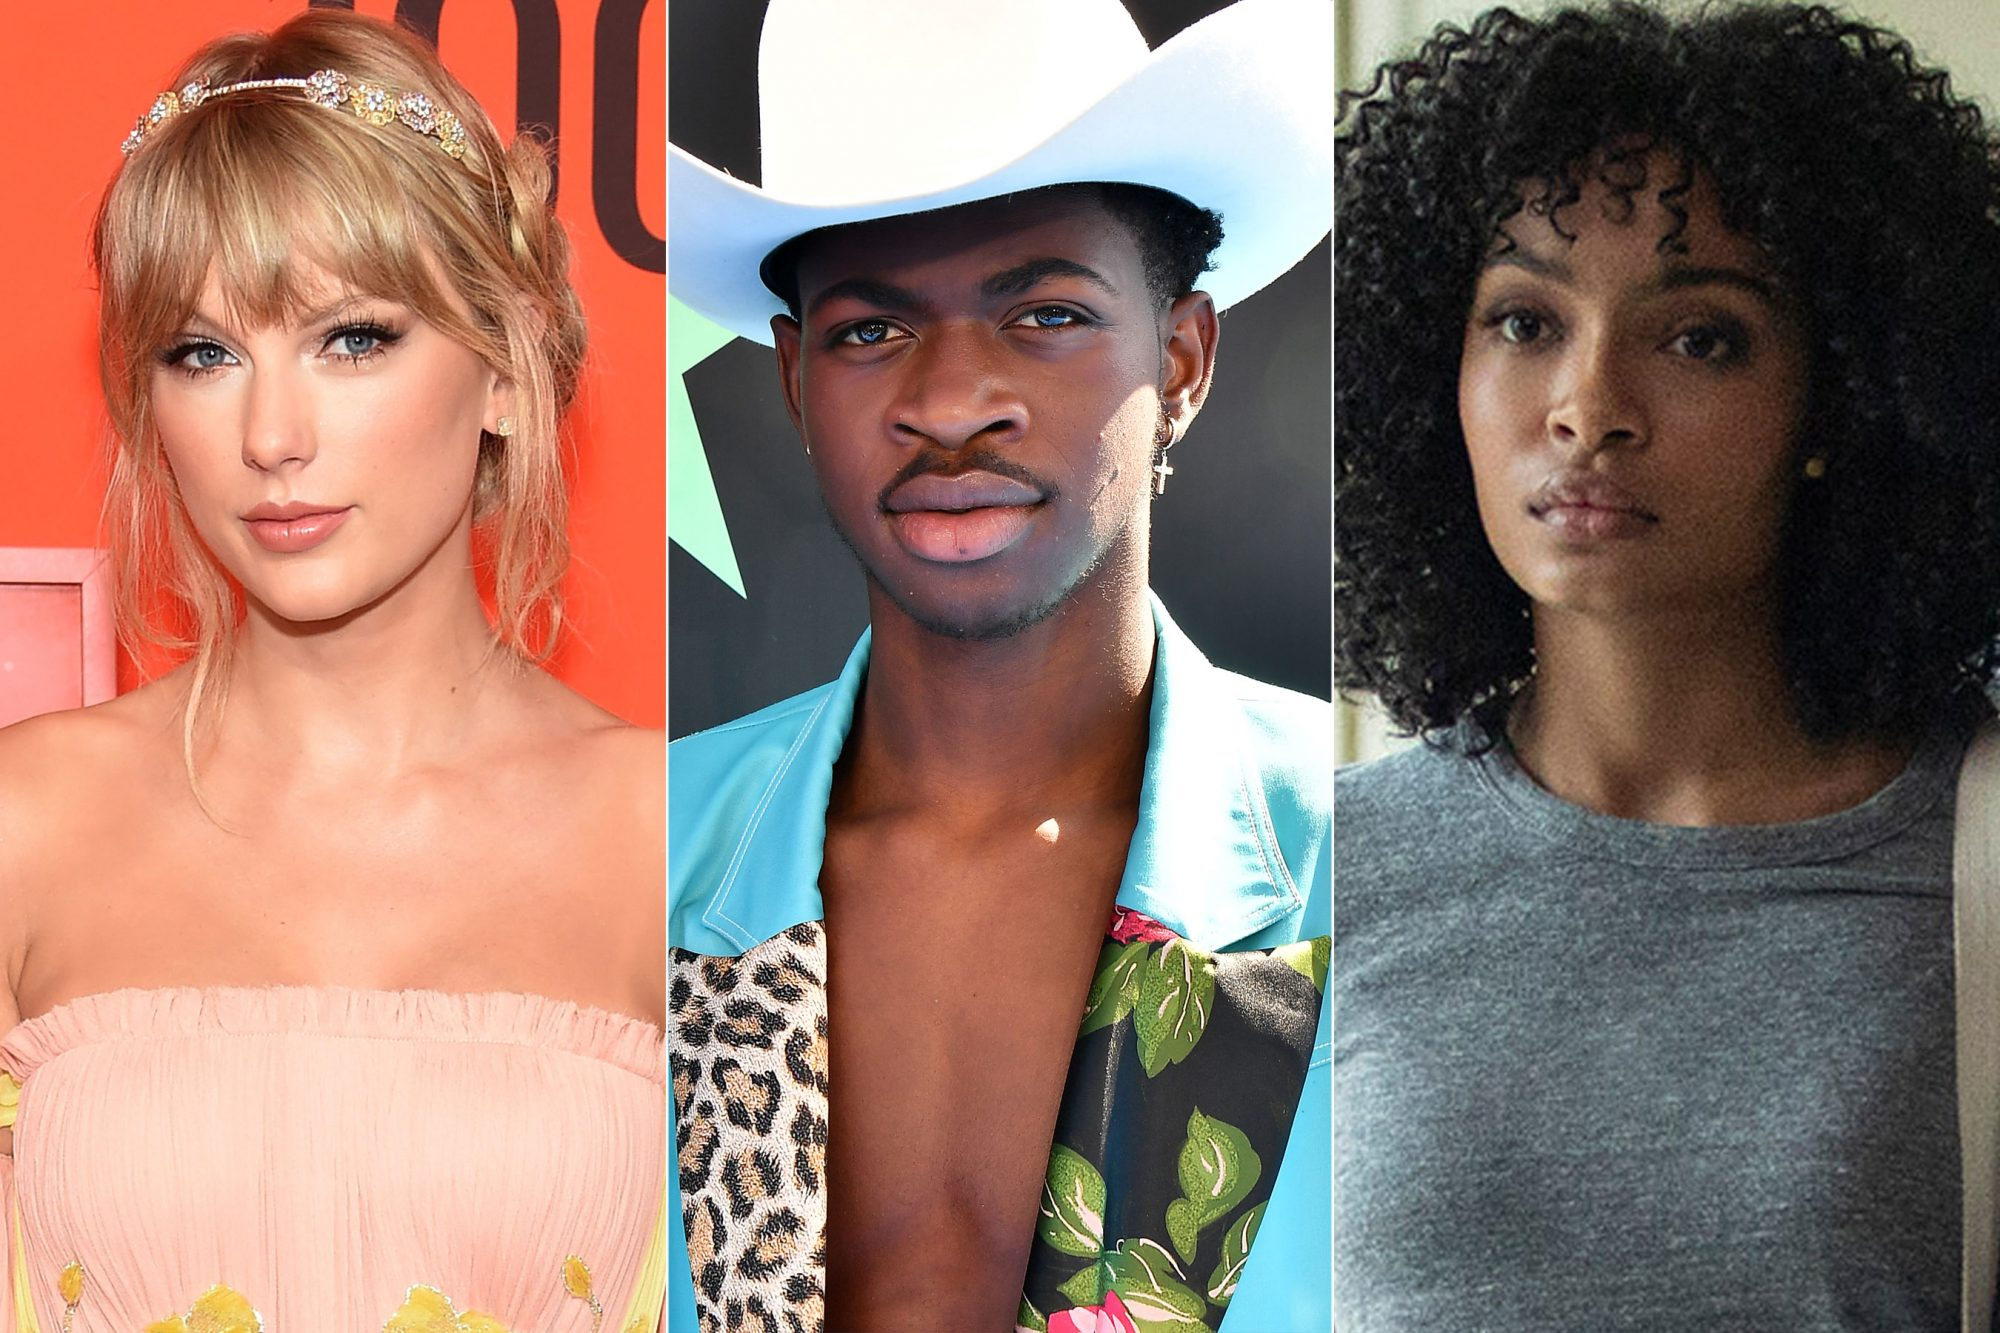 NEW YORK, NY - APRIL 23: Taylor Swift attends the 2019 Time 100 Gala at Frederick P. Rose Hall, Jazz at Lincoln Center on April 23, 2019 in New York City. (Photo by Jamie McCarthy/WireImage) LOS ANGELES, CALIFORNIA - JUNE 23: Lil Nas X attends the 2019 BET Awards at Microsoft Theater on June 23, 2019 in Los Angeles, California. (Photo by Paras Griffin/Getty Images) Daniel Bae-CHARLES MELTON; Natasha Kingsley-YARA SHAHIDI The sun is a star Atsushi Nishijima/Warner Bros.